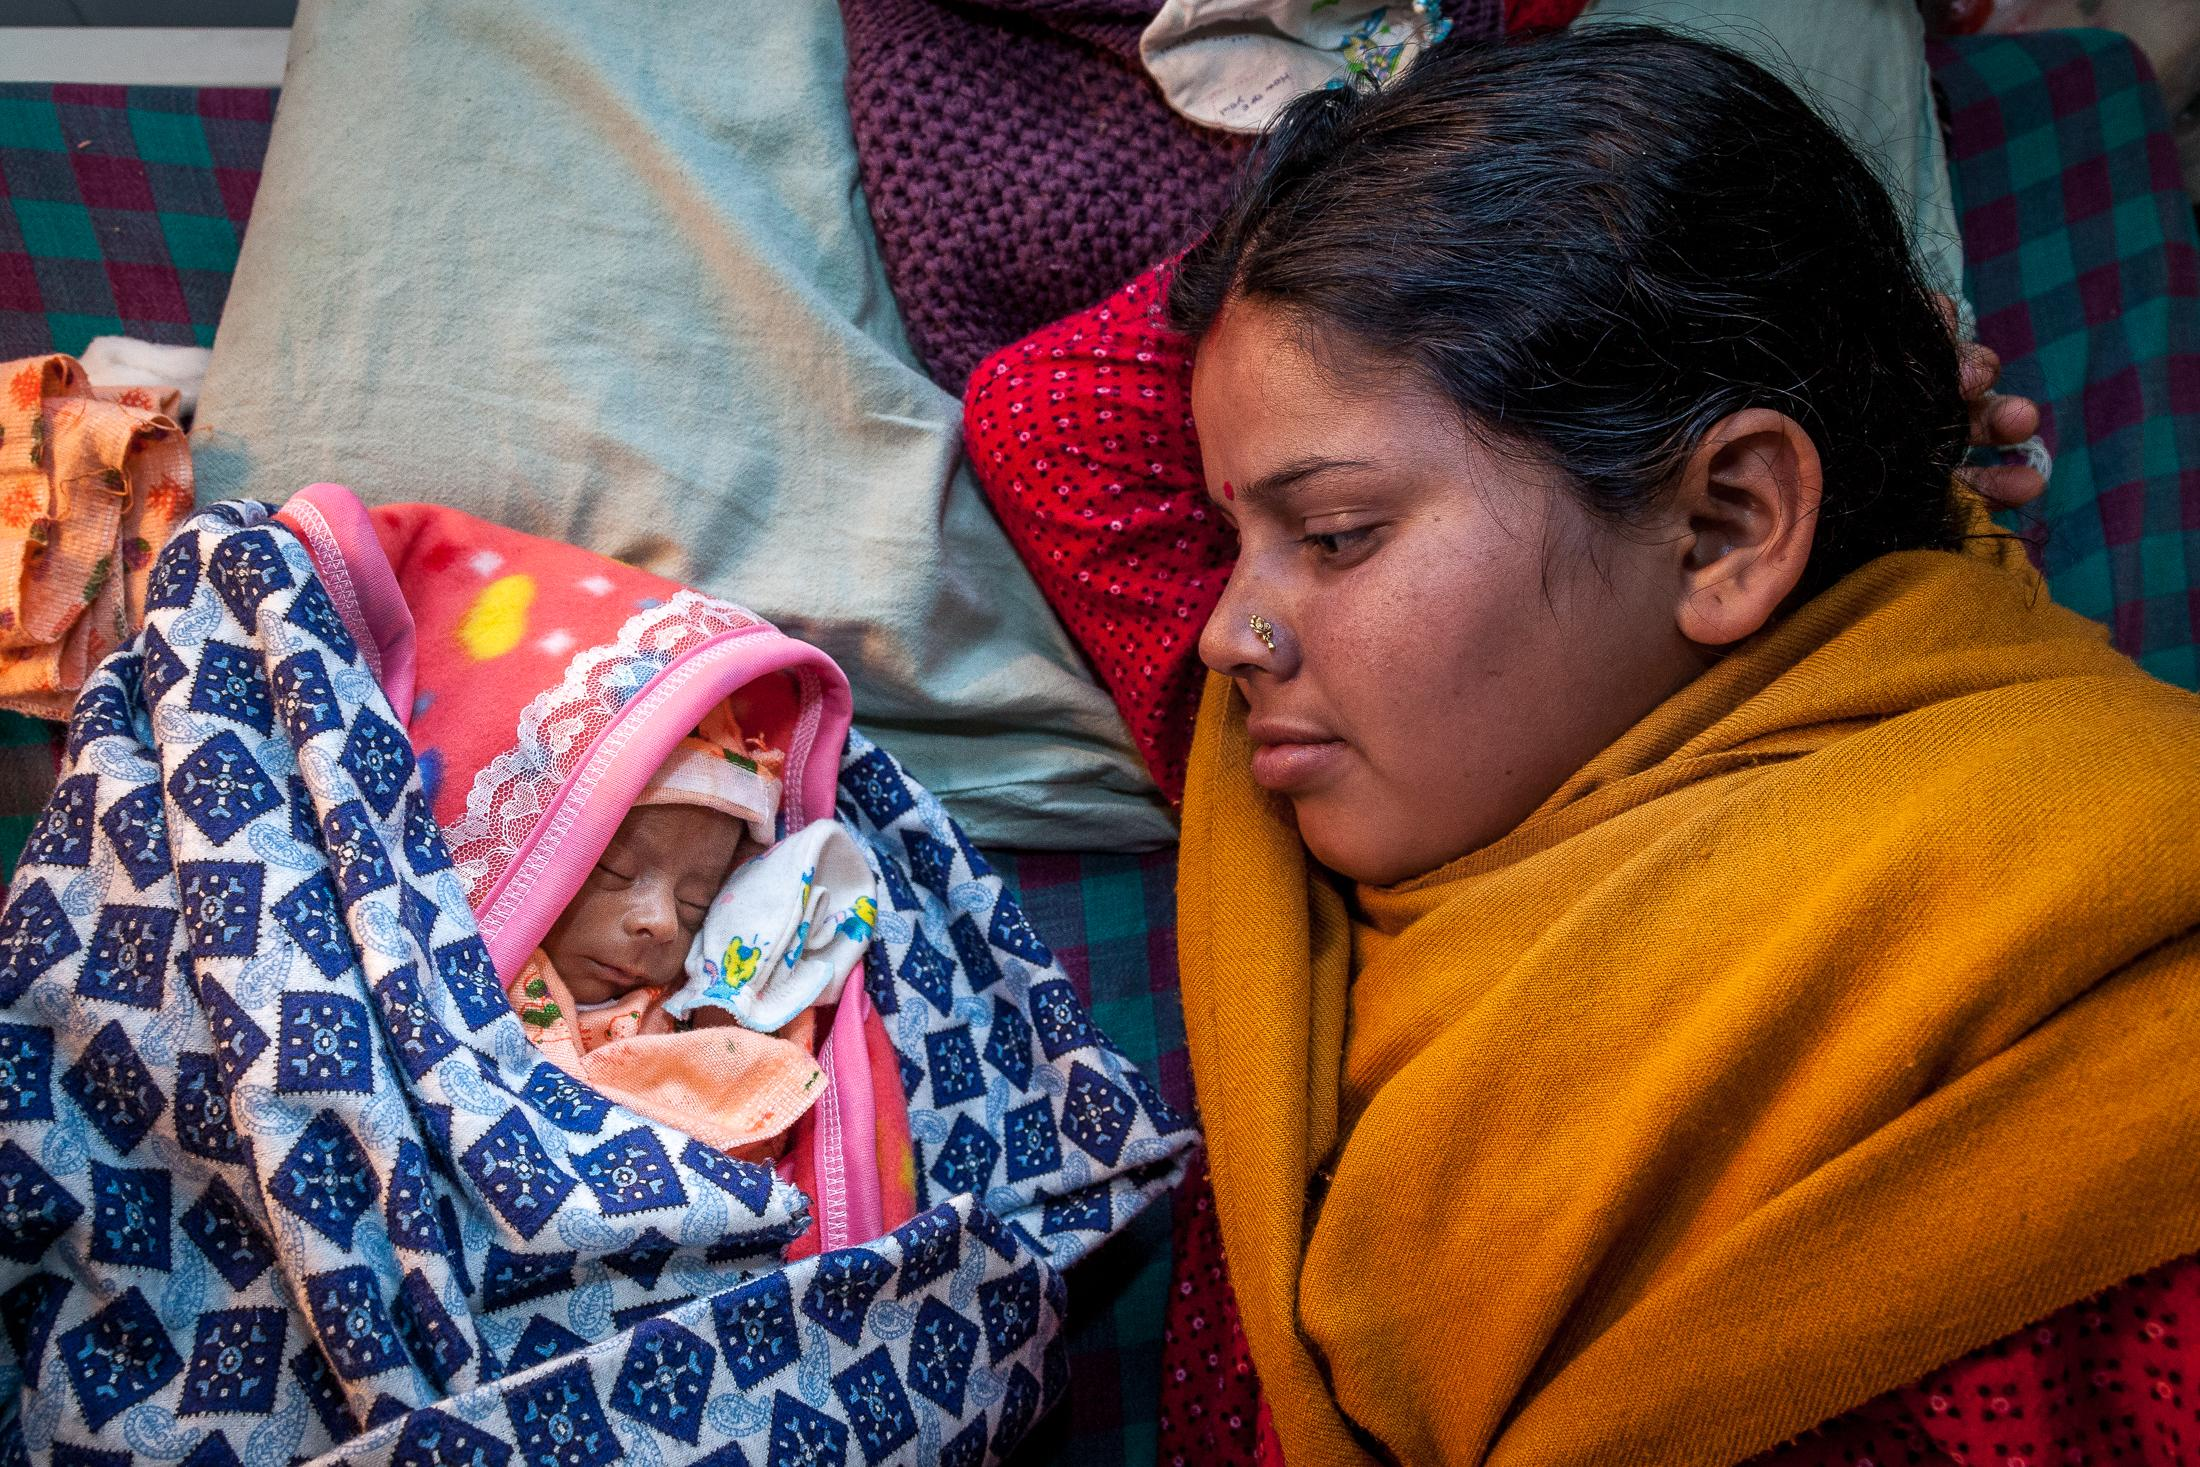 KATHMANDU, NEPAL - FEBRUARY 12: Munni, 18 years old, lays in a bed with her 21-days-old baby who was born prematurely at 28 weeks at the T.U. Teaching Hospital on February 12, 2015 in Kathmandu, Nepal. Premature babies are particularly at risk of health complications, including breathing, heart, brain, temperature control, gastrointestinal, blood, metabolism and immune system problems. From 1996 to 2006, Nepal reduced by close to 50% its maternal mortality rate, going from 539 deaths in 100,000 to 281, making Nepal a success story. However, each year, 57,000 under-five children still lose their lives, with 54% of those cases occurring within the first month after birth. In 2013, only 50% of births were attended by skilled birth attendants. Several issues remain to be addressed with regards to maternal and newborn health, including tackling inequalities, improving access to care in remote areas, improving quality of care, increasing the use of family planning methods, and reducing malnutrition. Photo: © Omar Havana for UNICEF